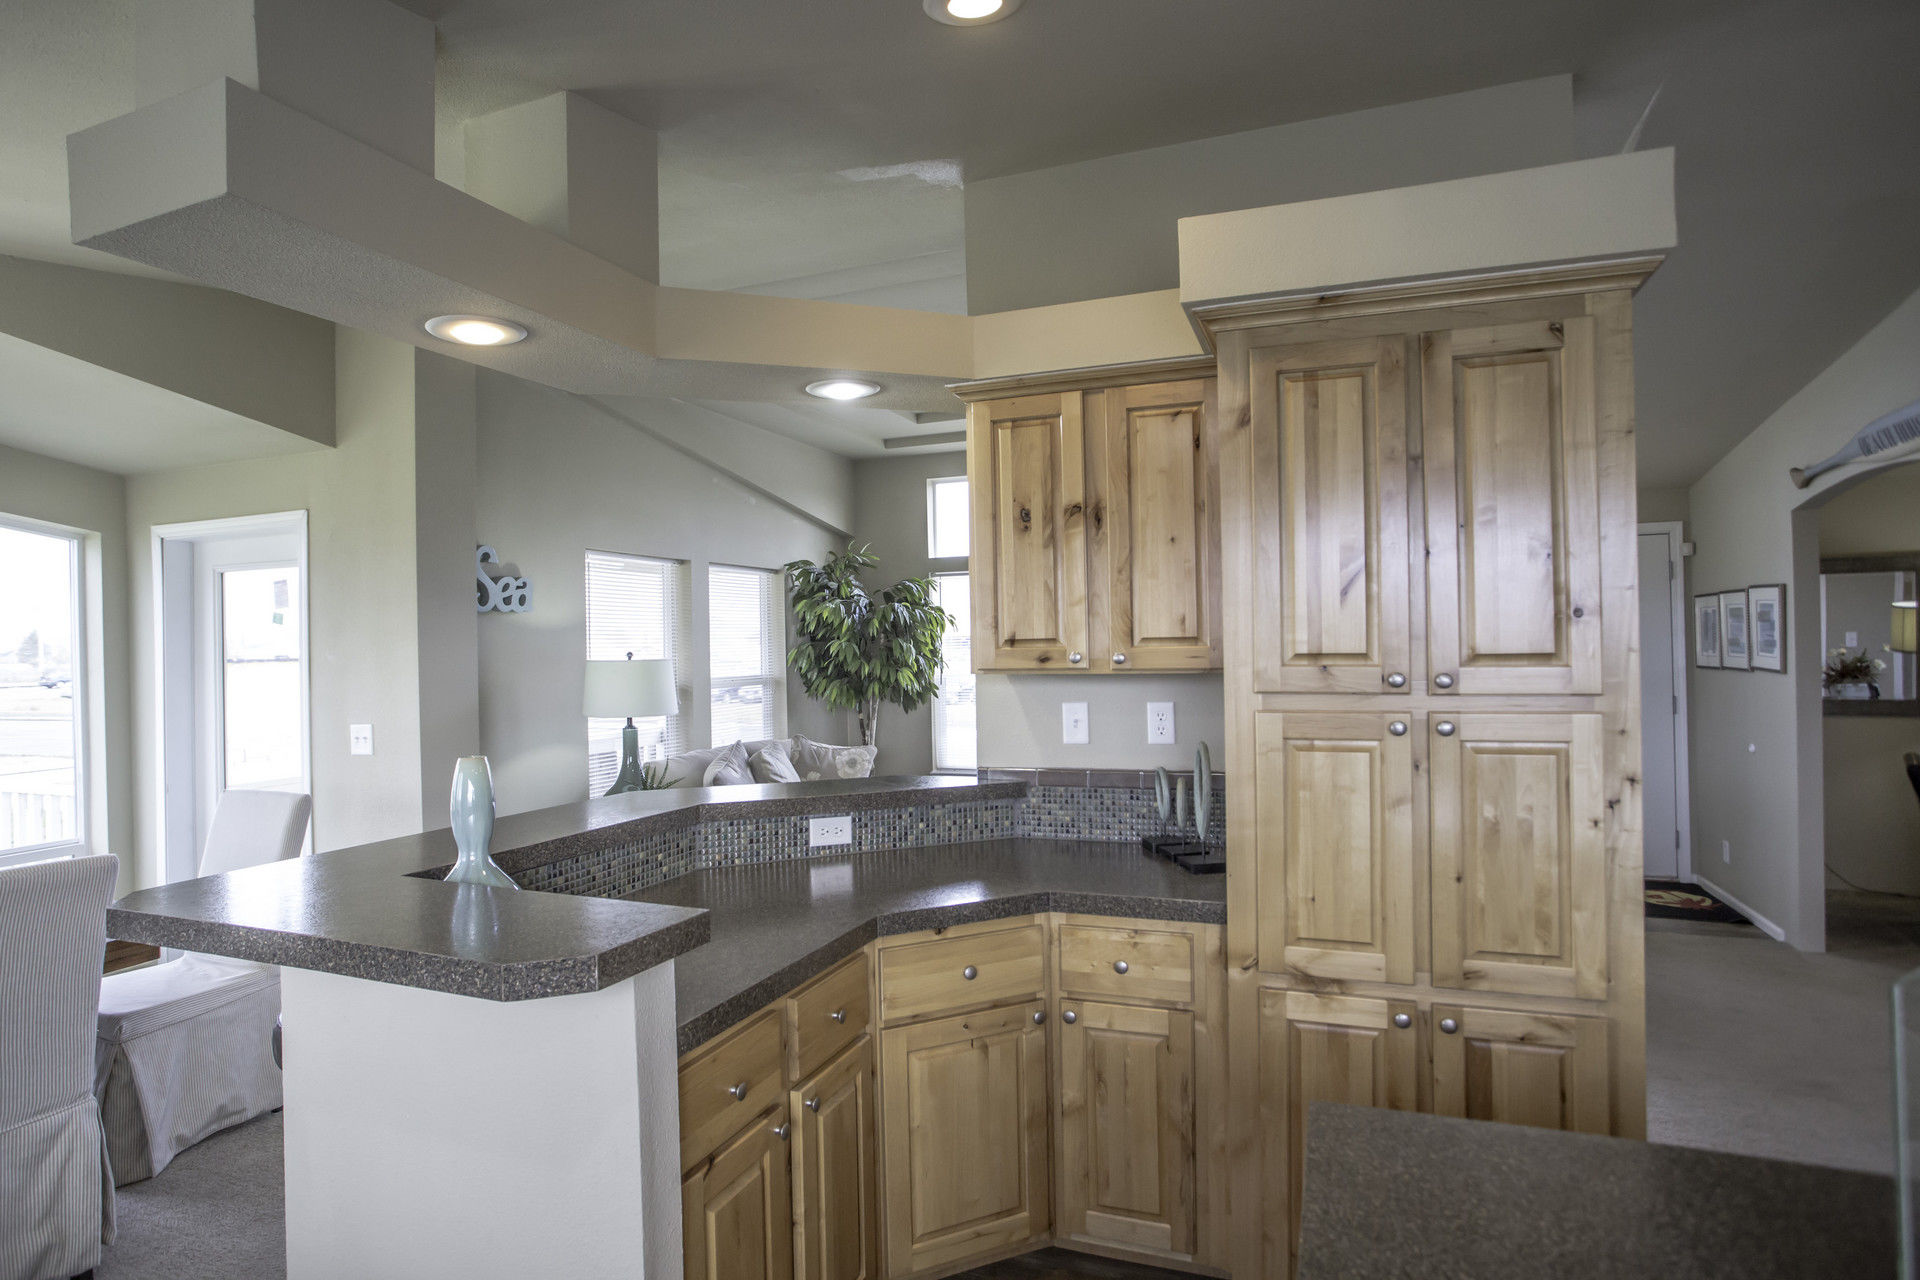 The Sunset Bay 3 Bed 2 Bath 1500 Sqft Affordable Home